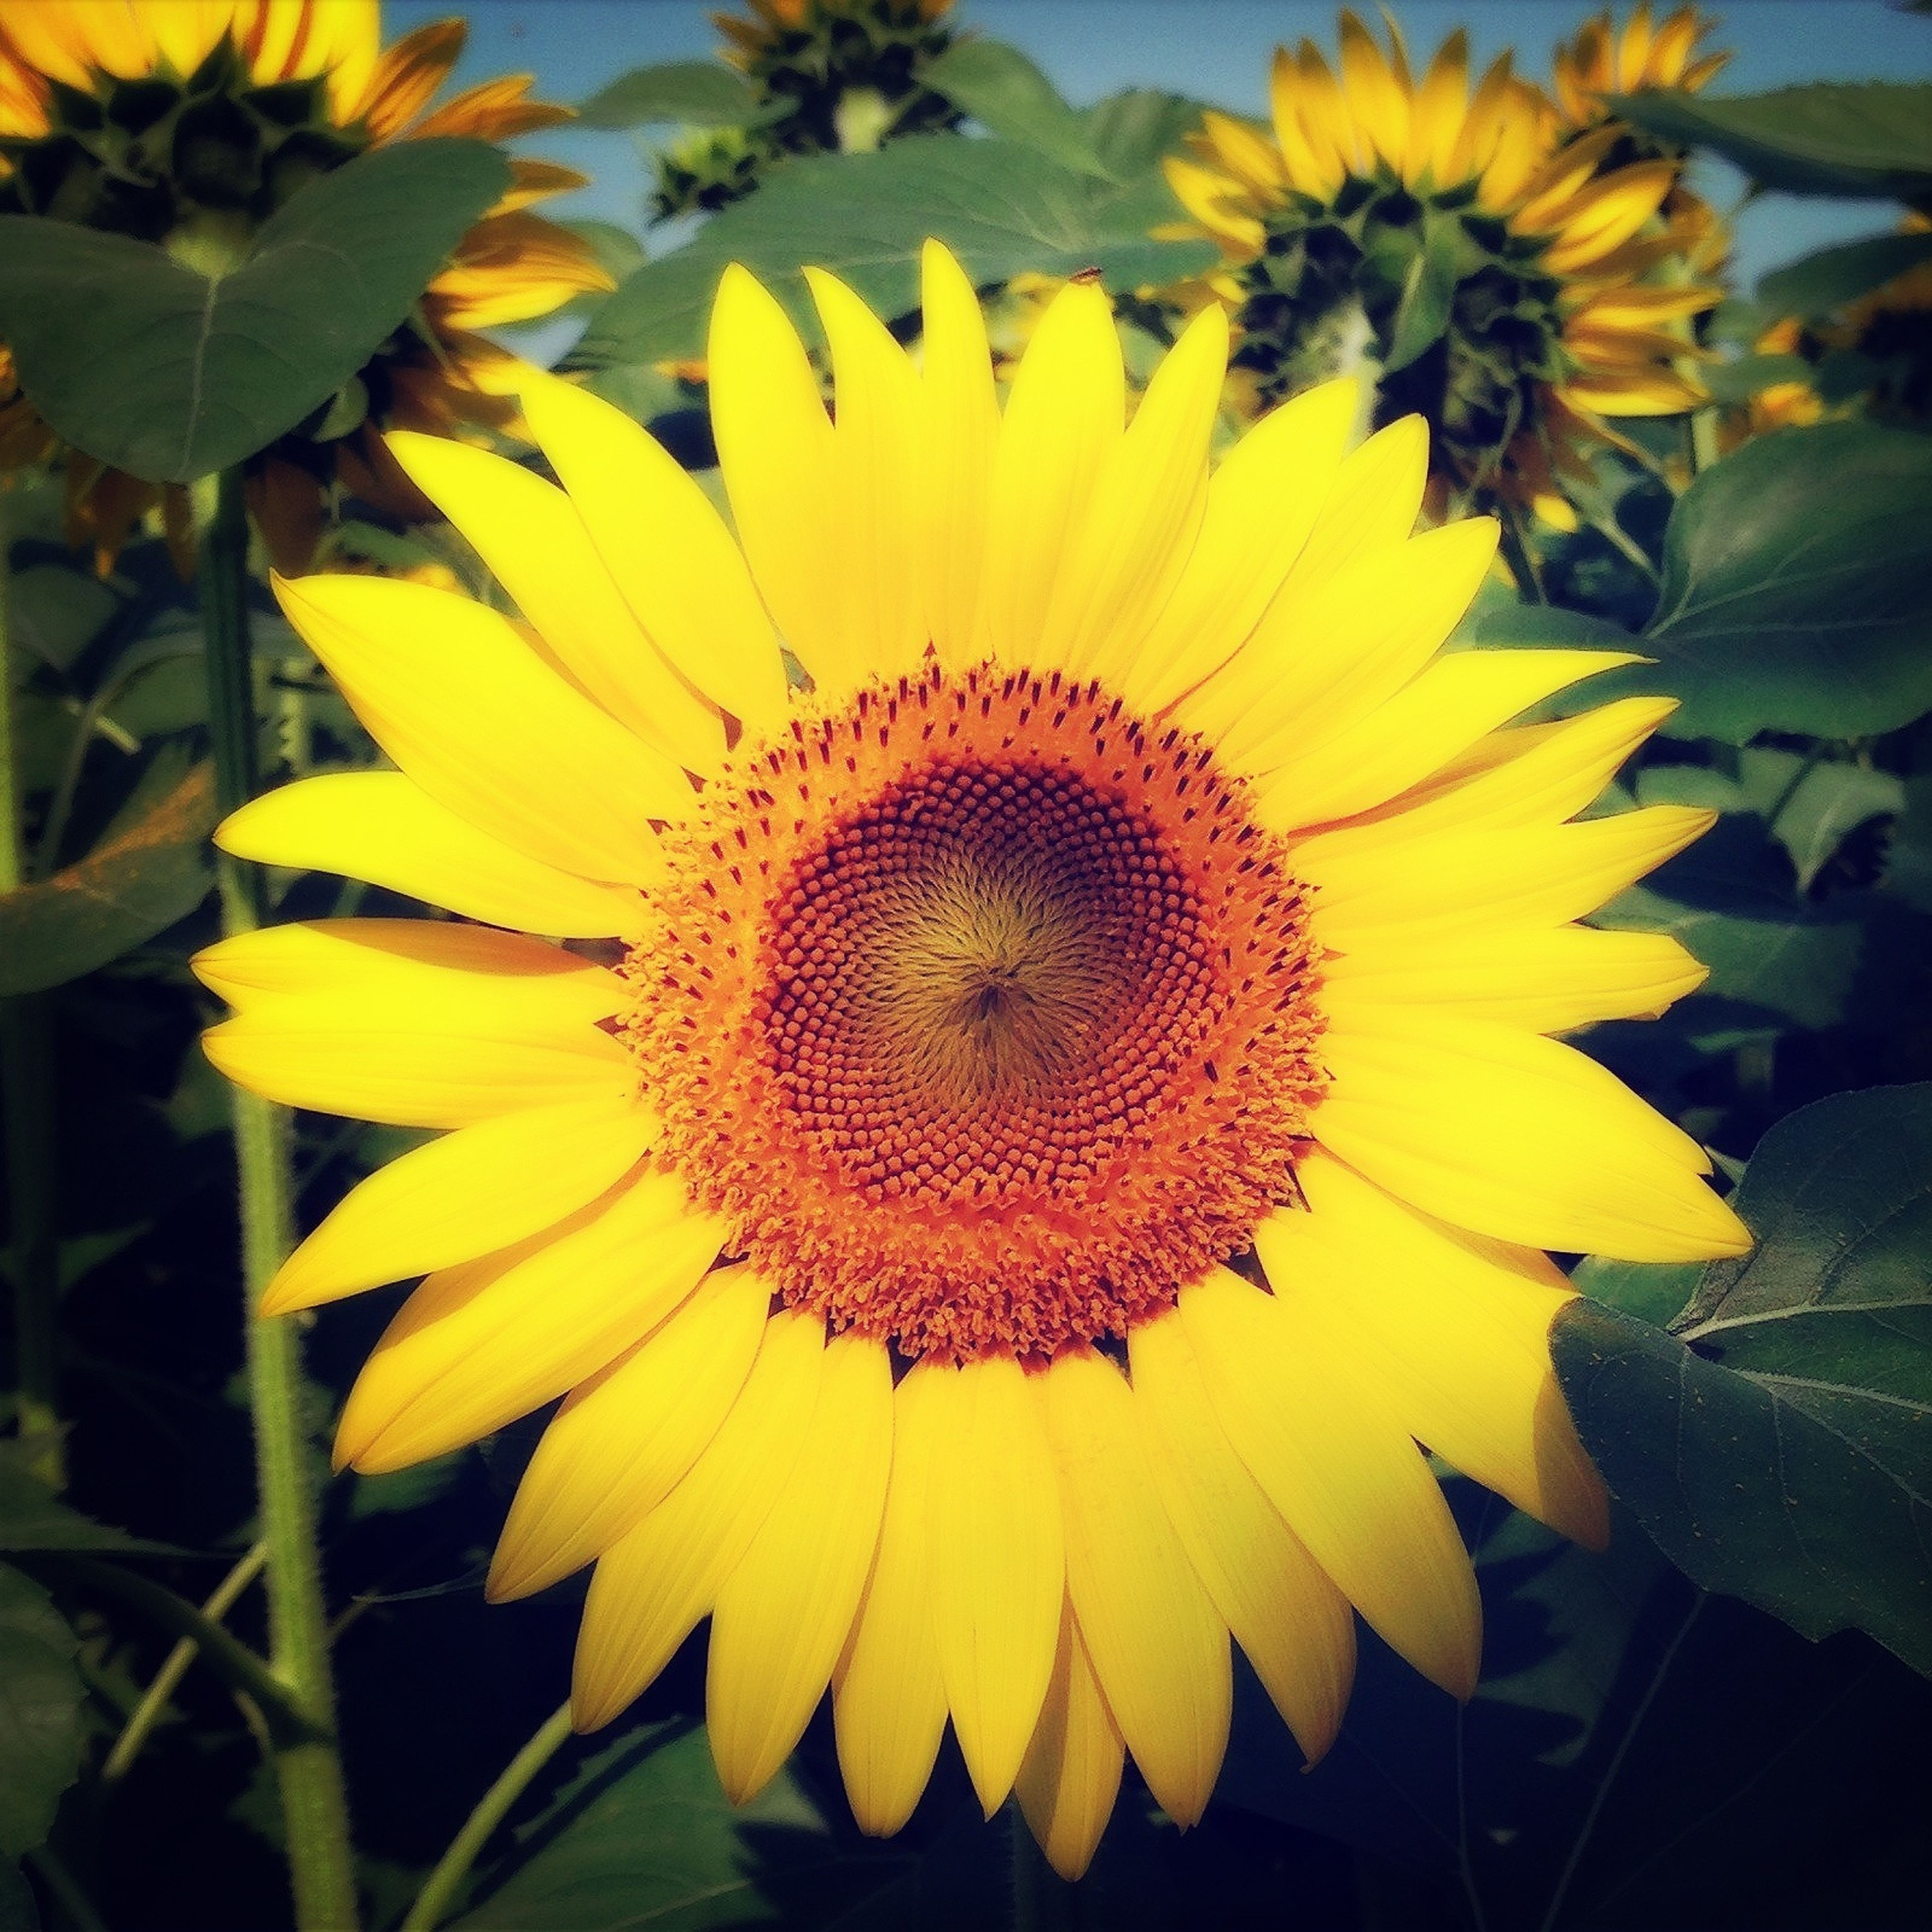 flower, yellow, petal, freshness, flower head, fragility, sunflower, growth, pollen, beauty in nature, blooming, plant, single flower, close-up, nature, leaf, in bloom, focus on foreground, outdoors, day